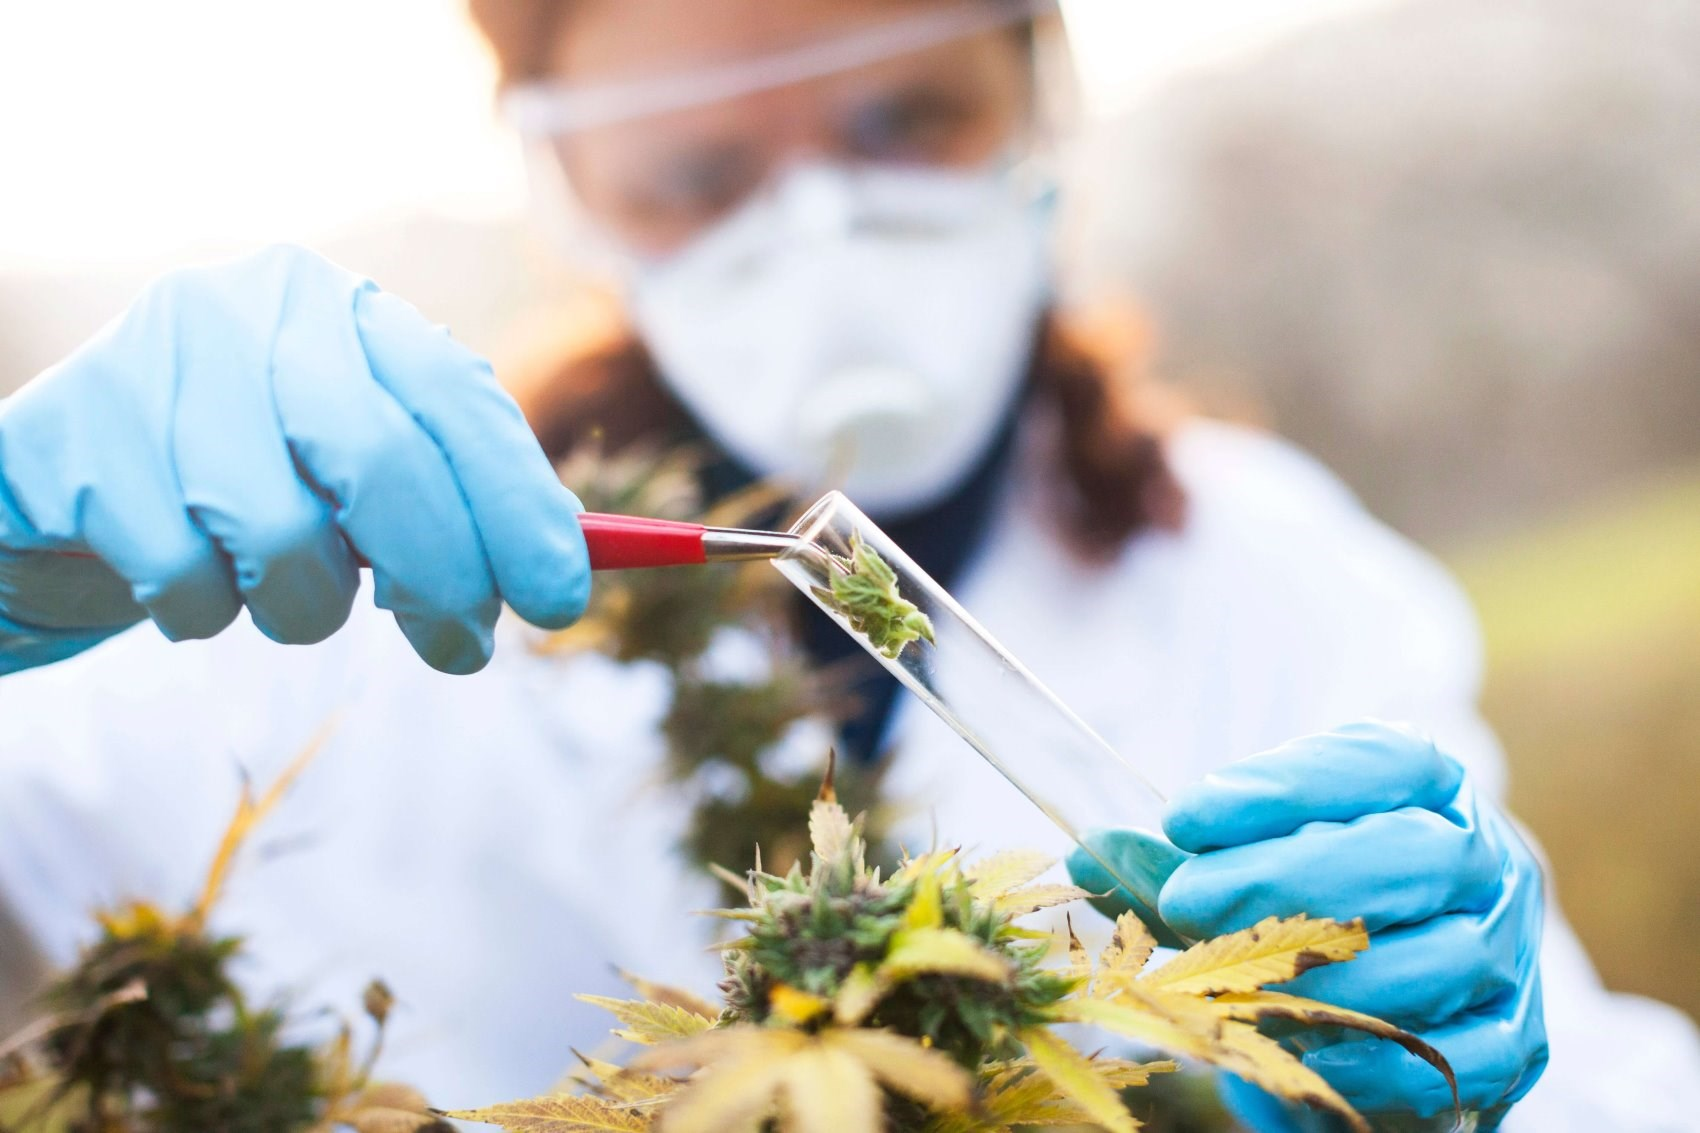 """The FDA still considers marijuana as a Schedule 1 drug, meaning it has """"no currently accepted medical use and a high potential for abuse."""""""